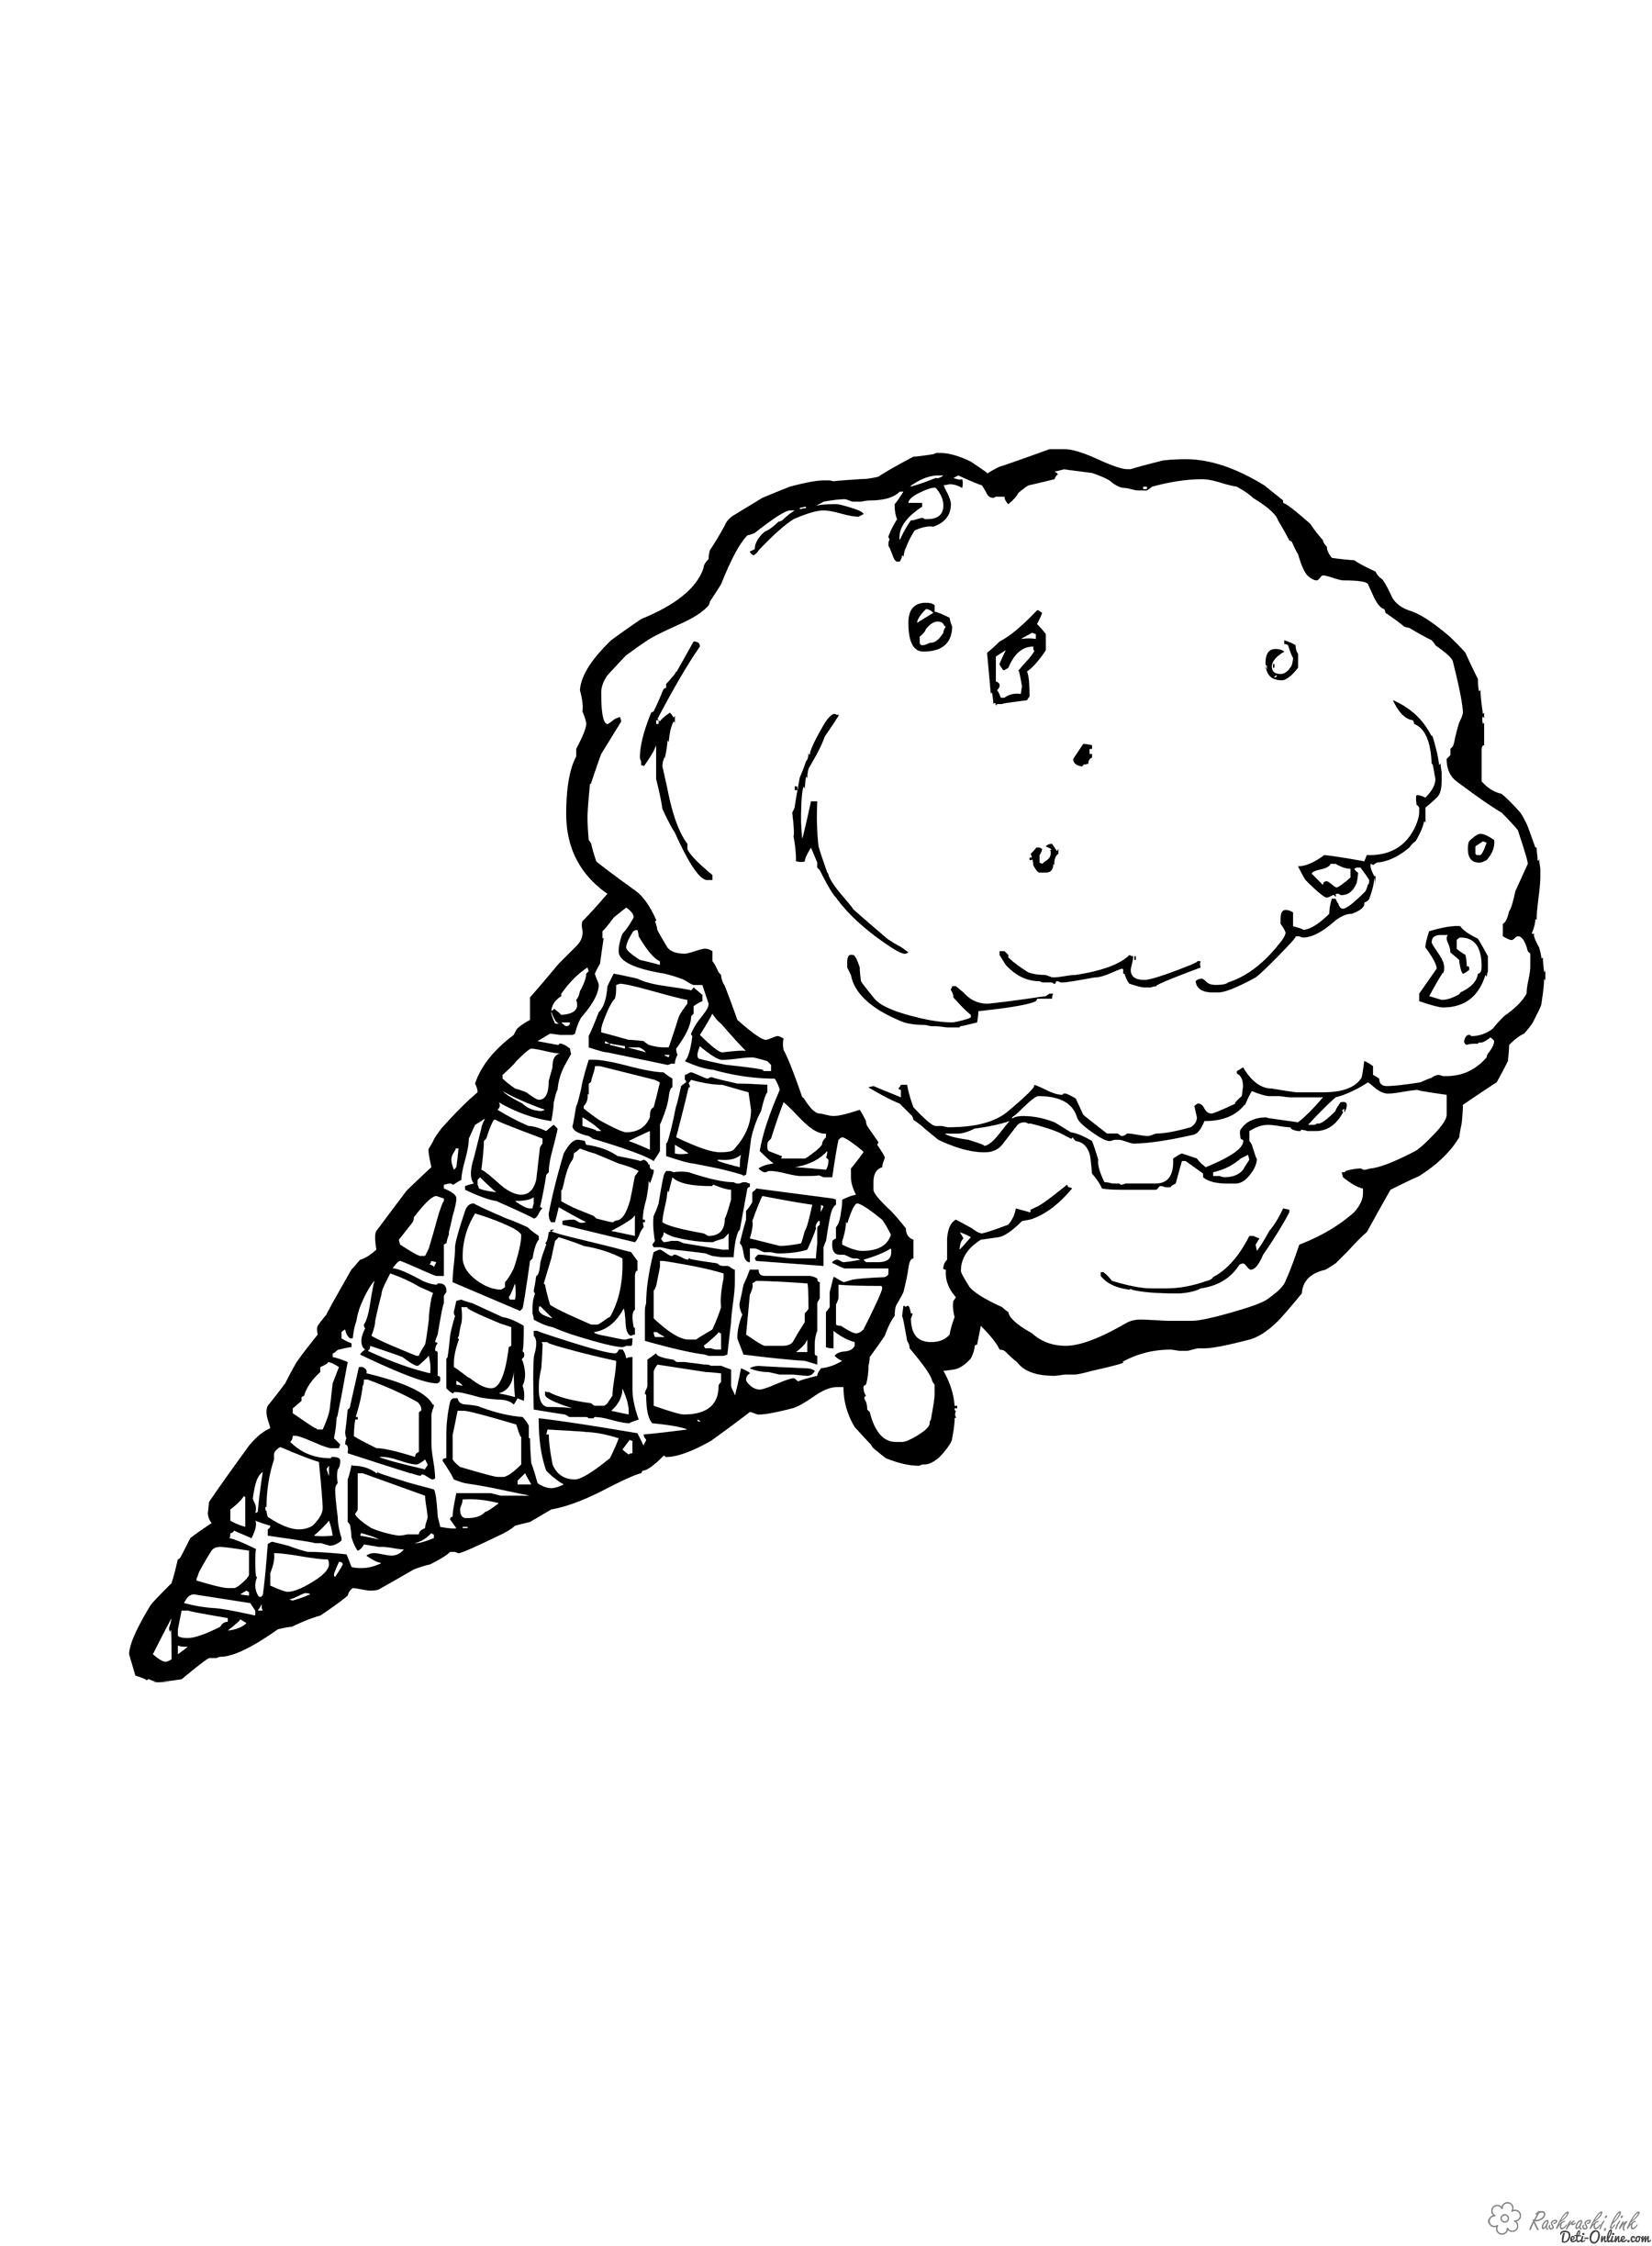 Coloring Ice-cream coloring pages for children, ice cream, dessert, very tasty